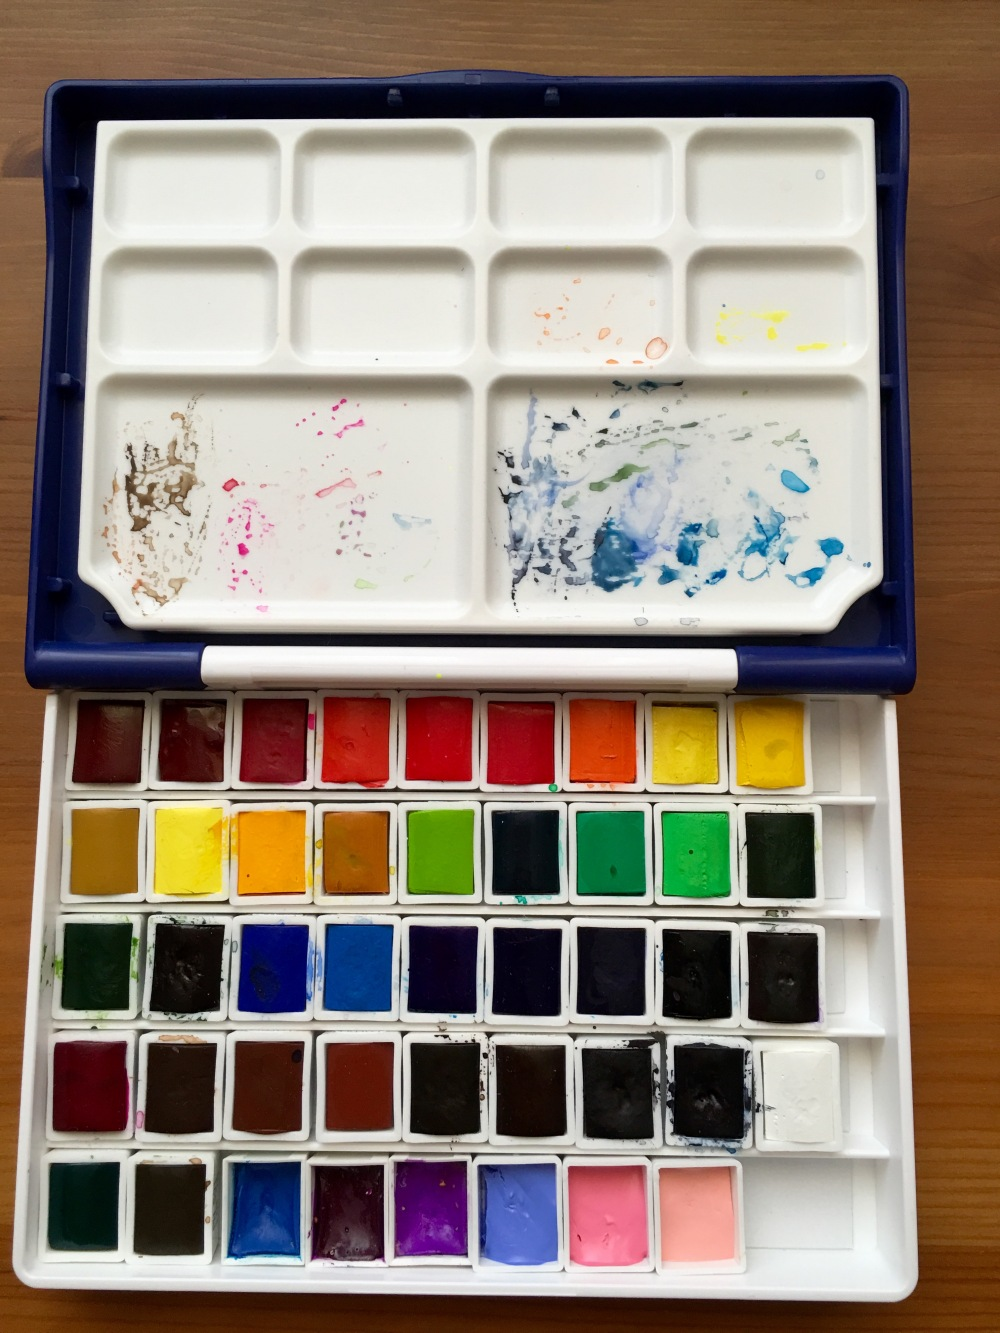 Holbein Palm Box Plus open with paint pans added